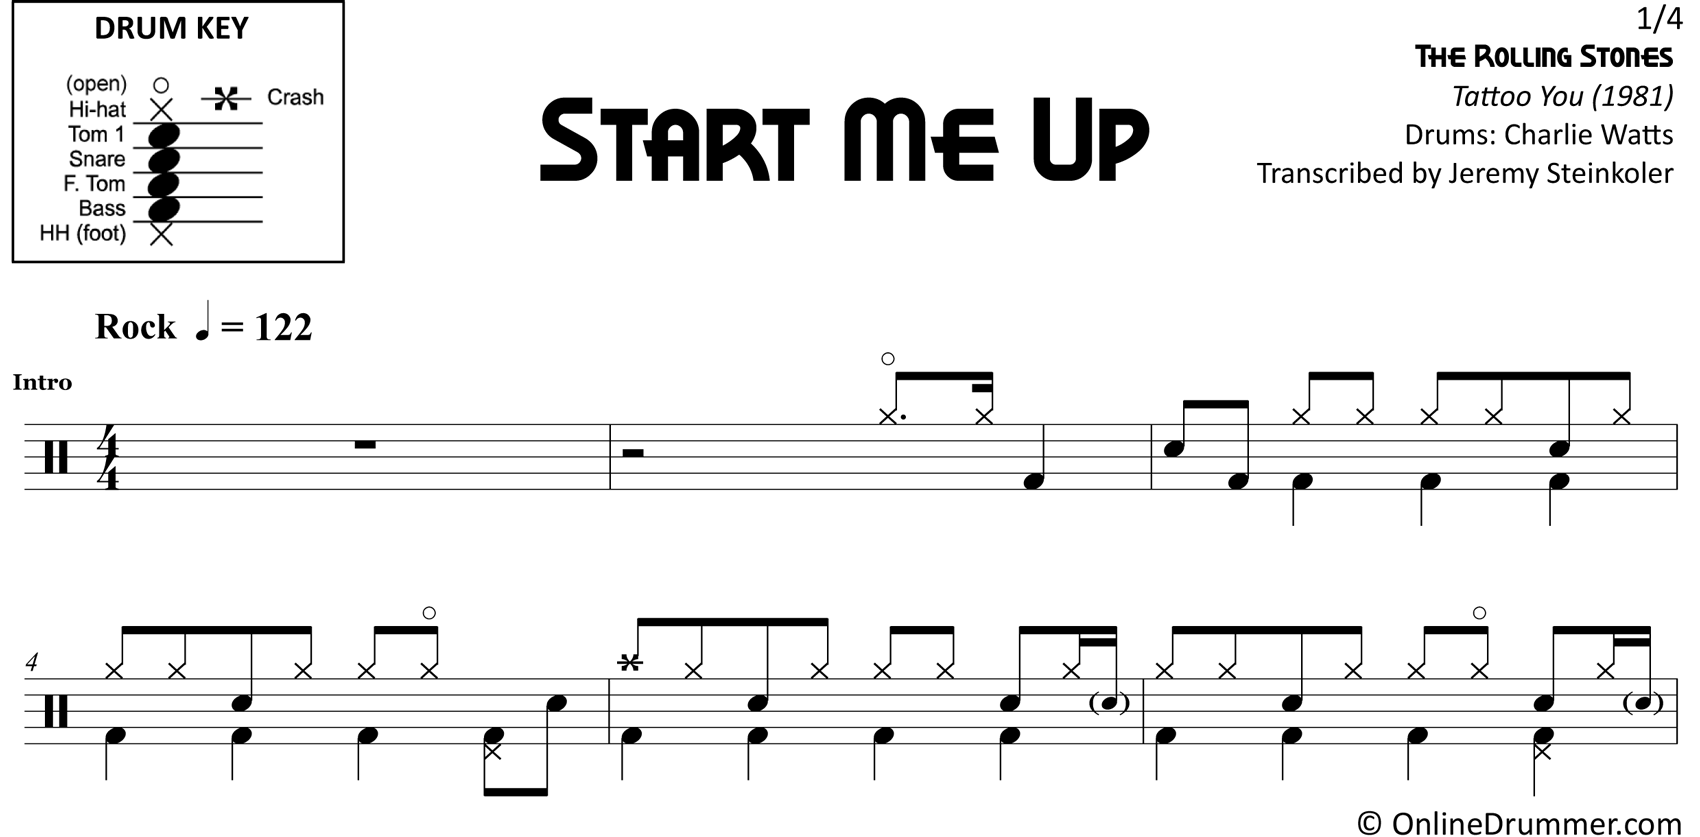 Start Me Up - The Rolling Stones - Drum Sheet Music